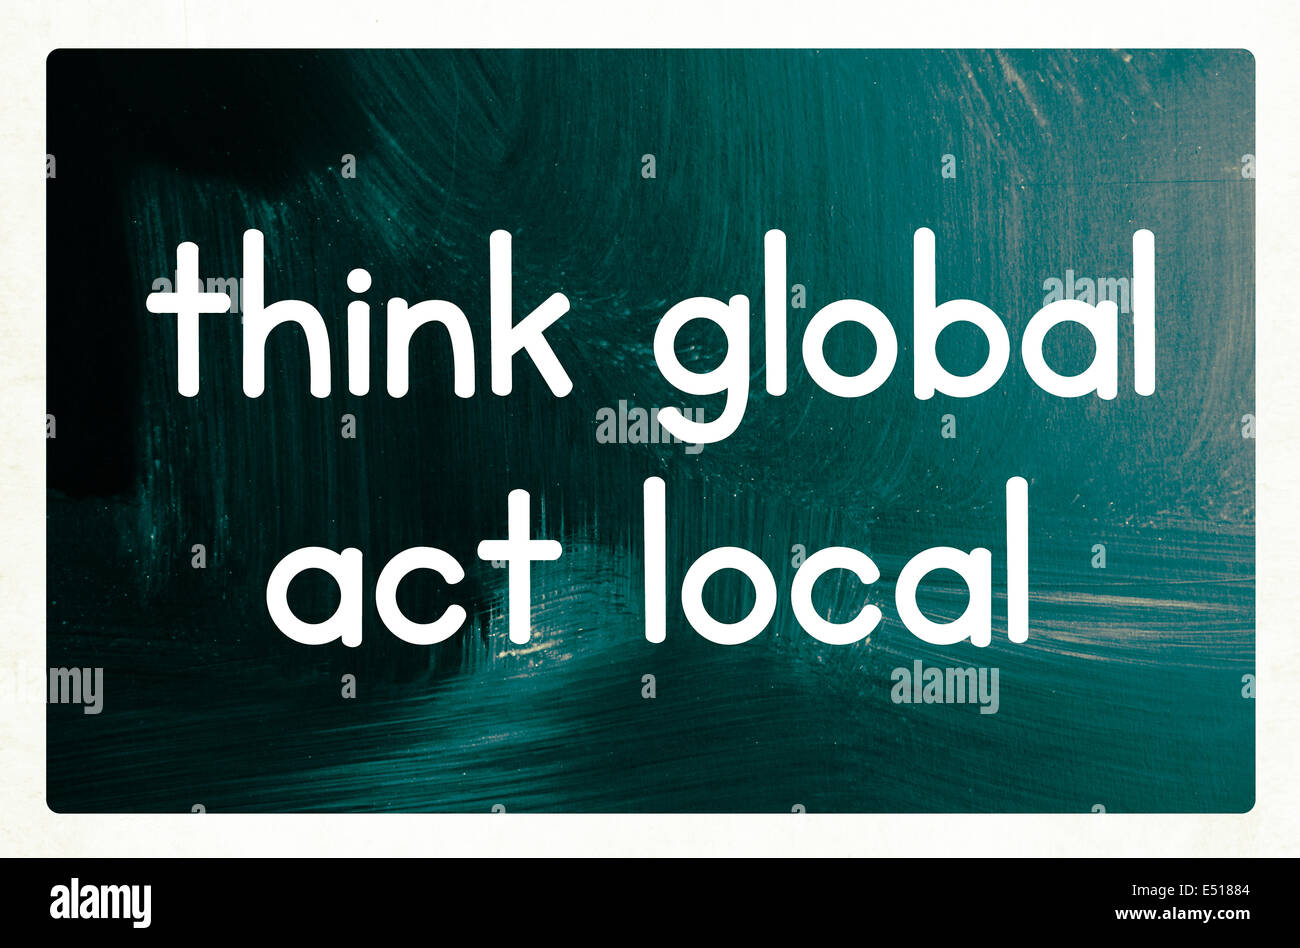 Think Global Act Local concept Photo Stock